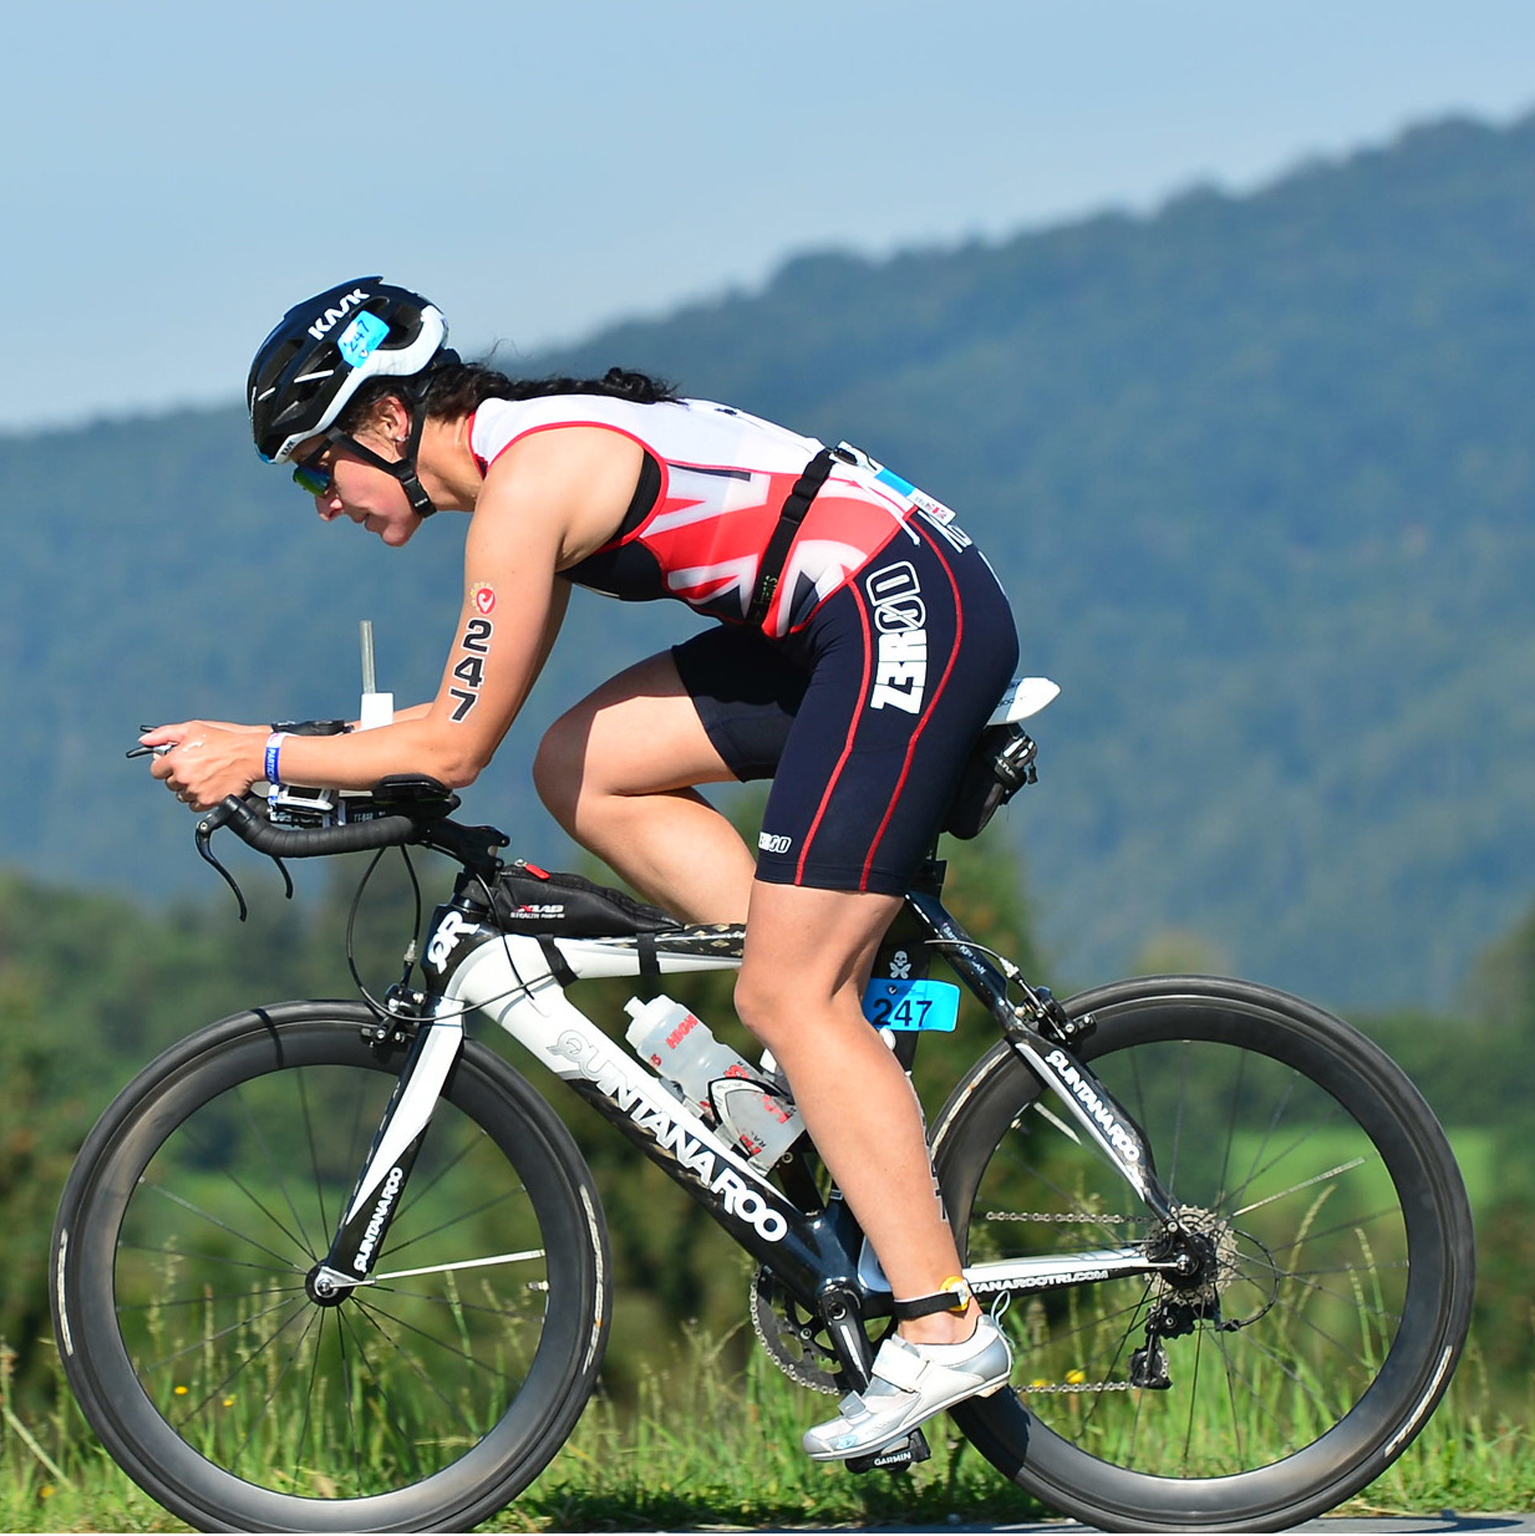 A picture of Sarah on a racing bike, taken during a triathlon in Austria